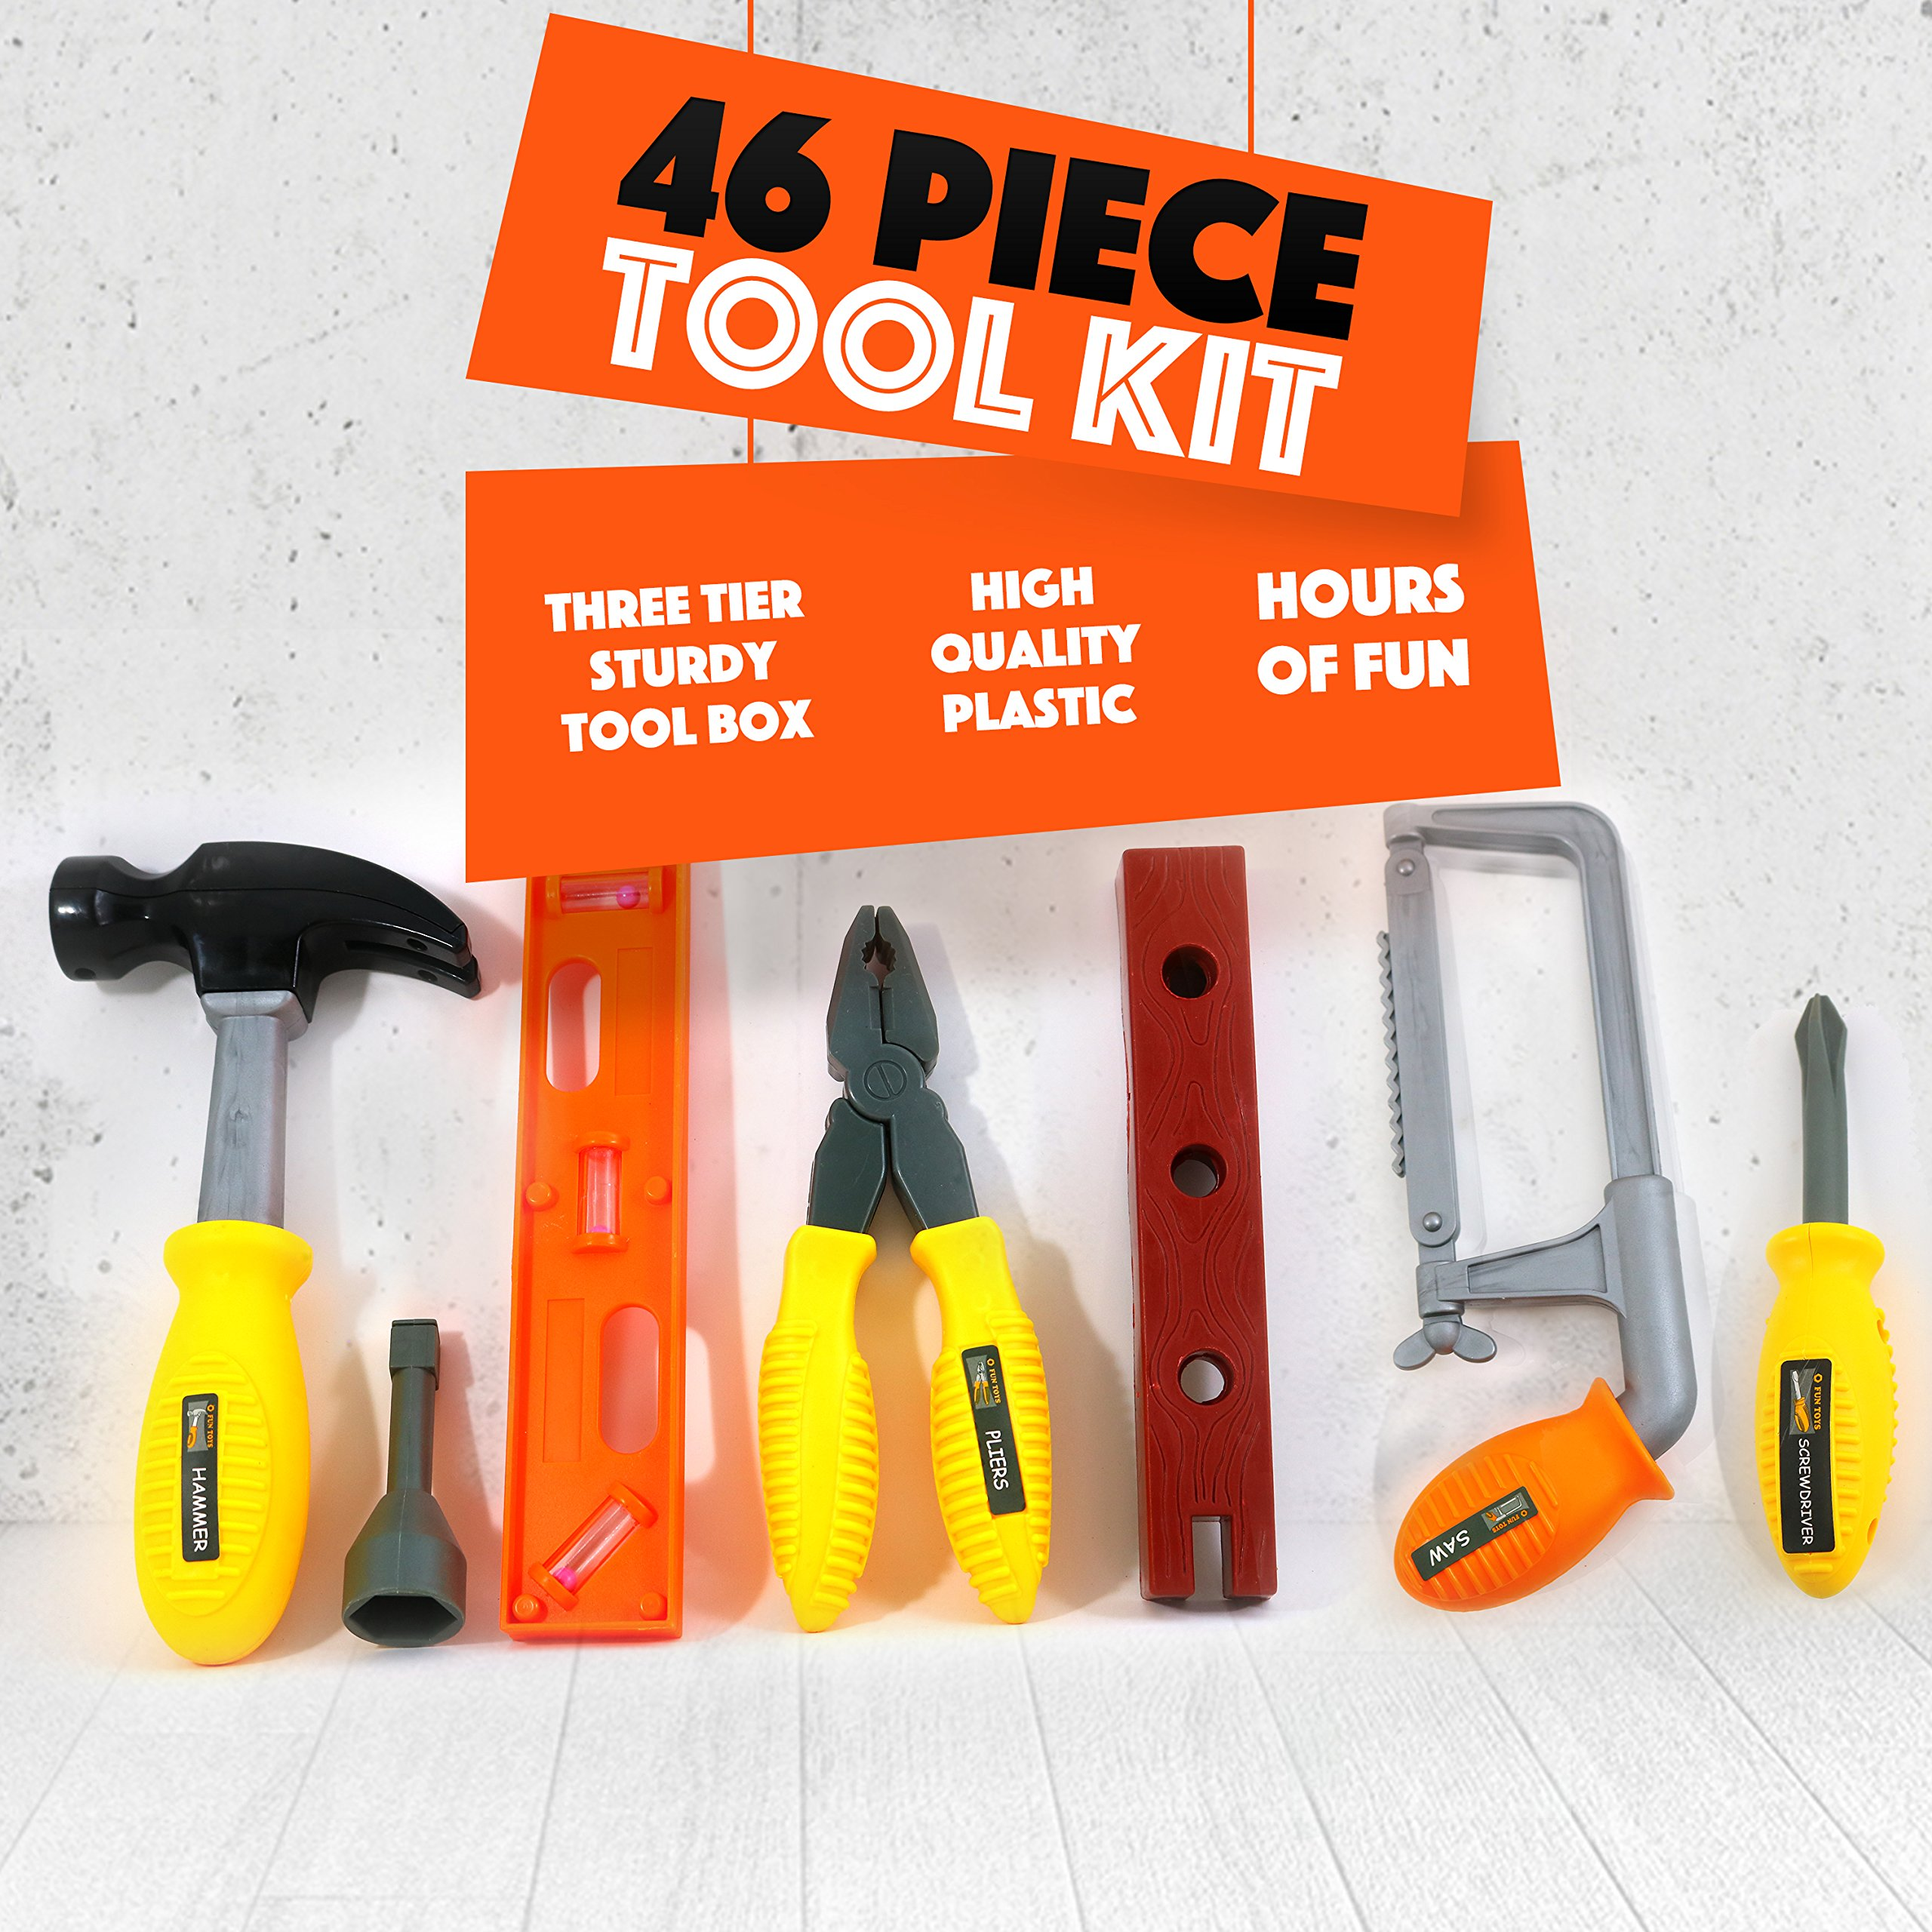 Big Mo's Toys 46 Piece Toy Tool Box and Kid's Tool Kit - Includes Drill, Hammer, Saw, Tri Level Case and Many Construction and Building Tools and Accessories by Big Mo's Toys (Image #4)